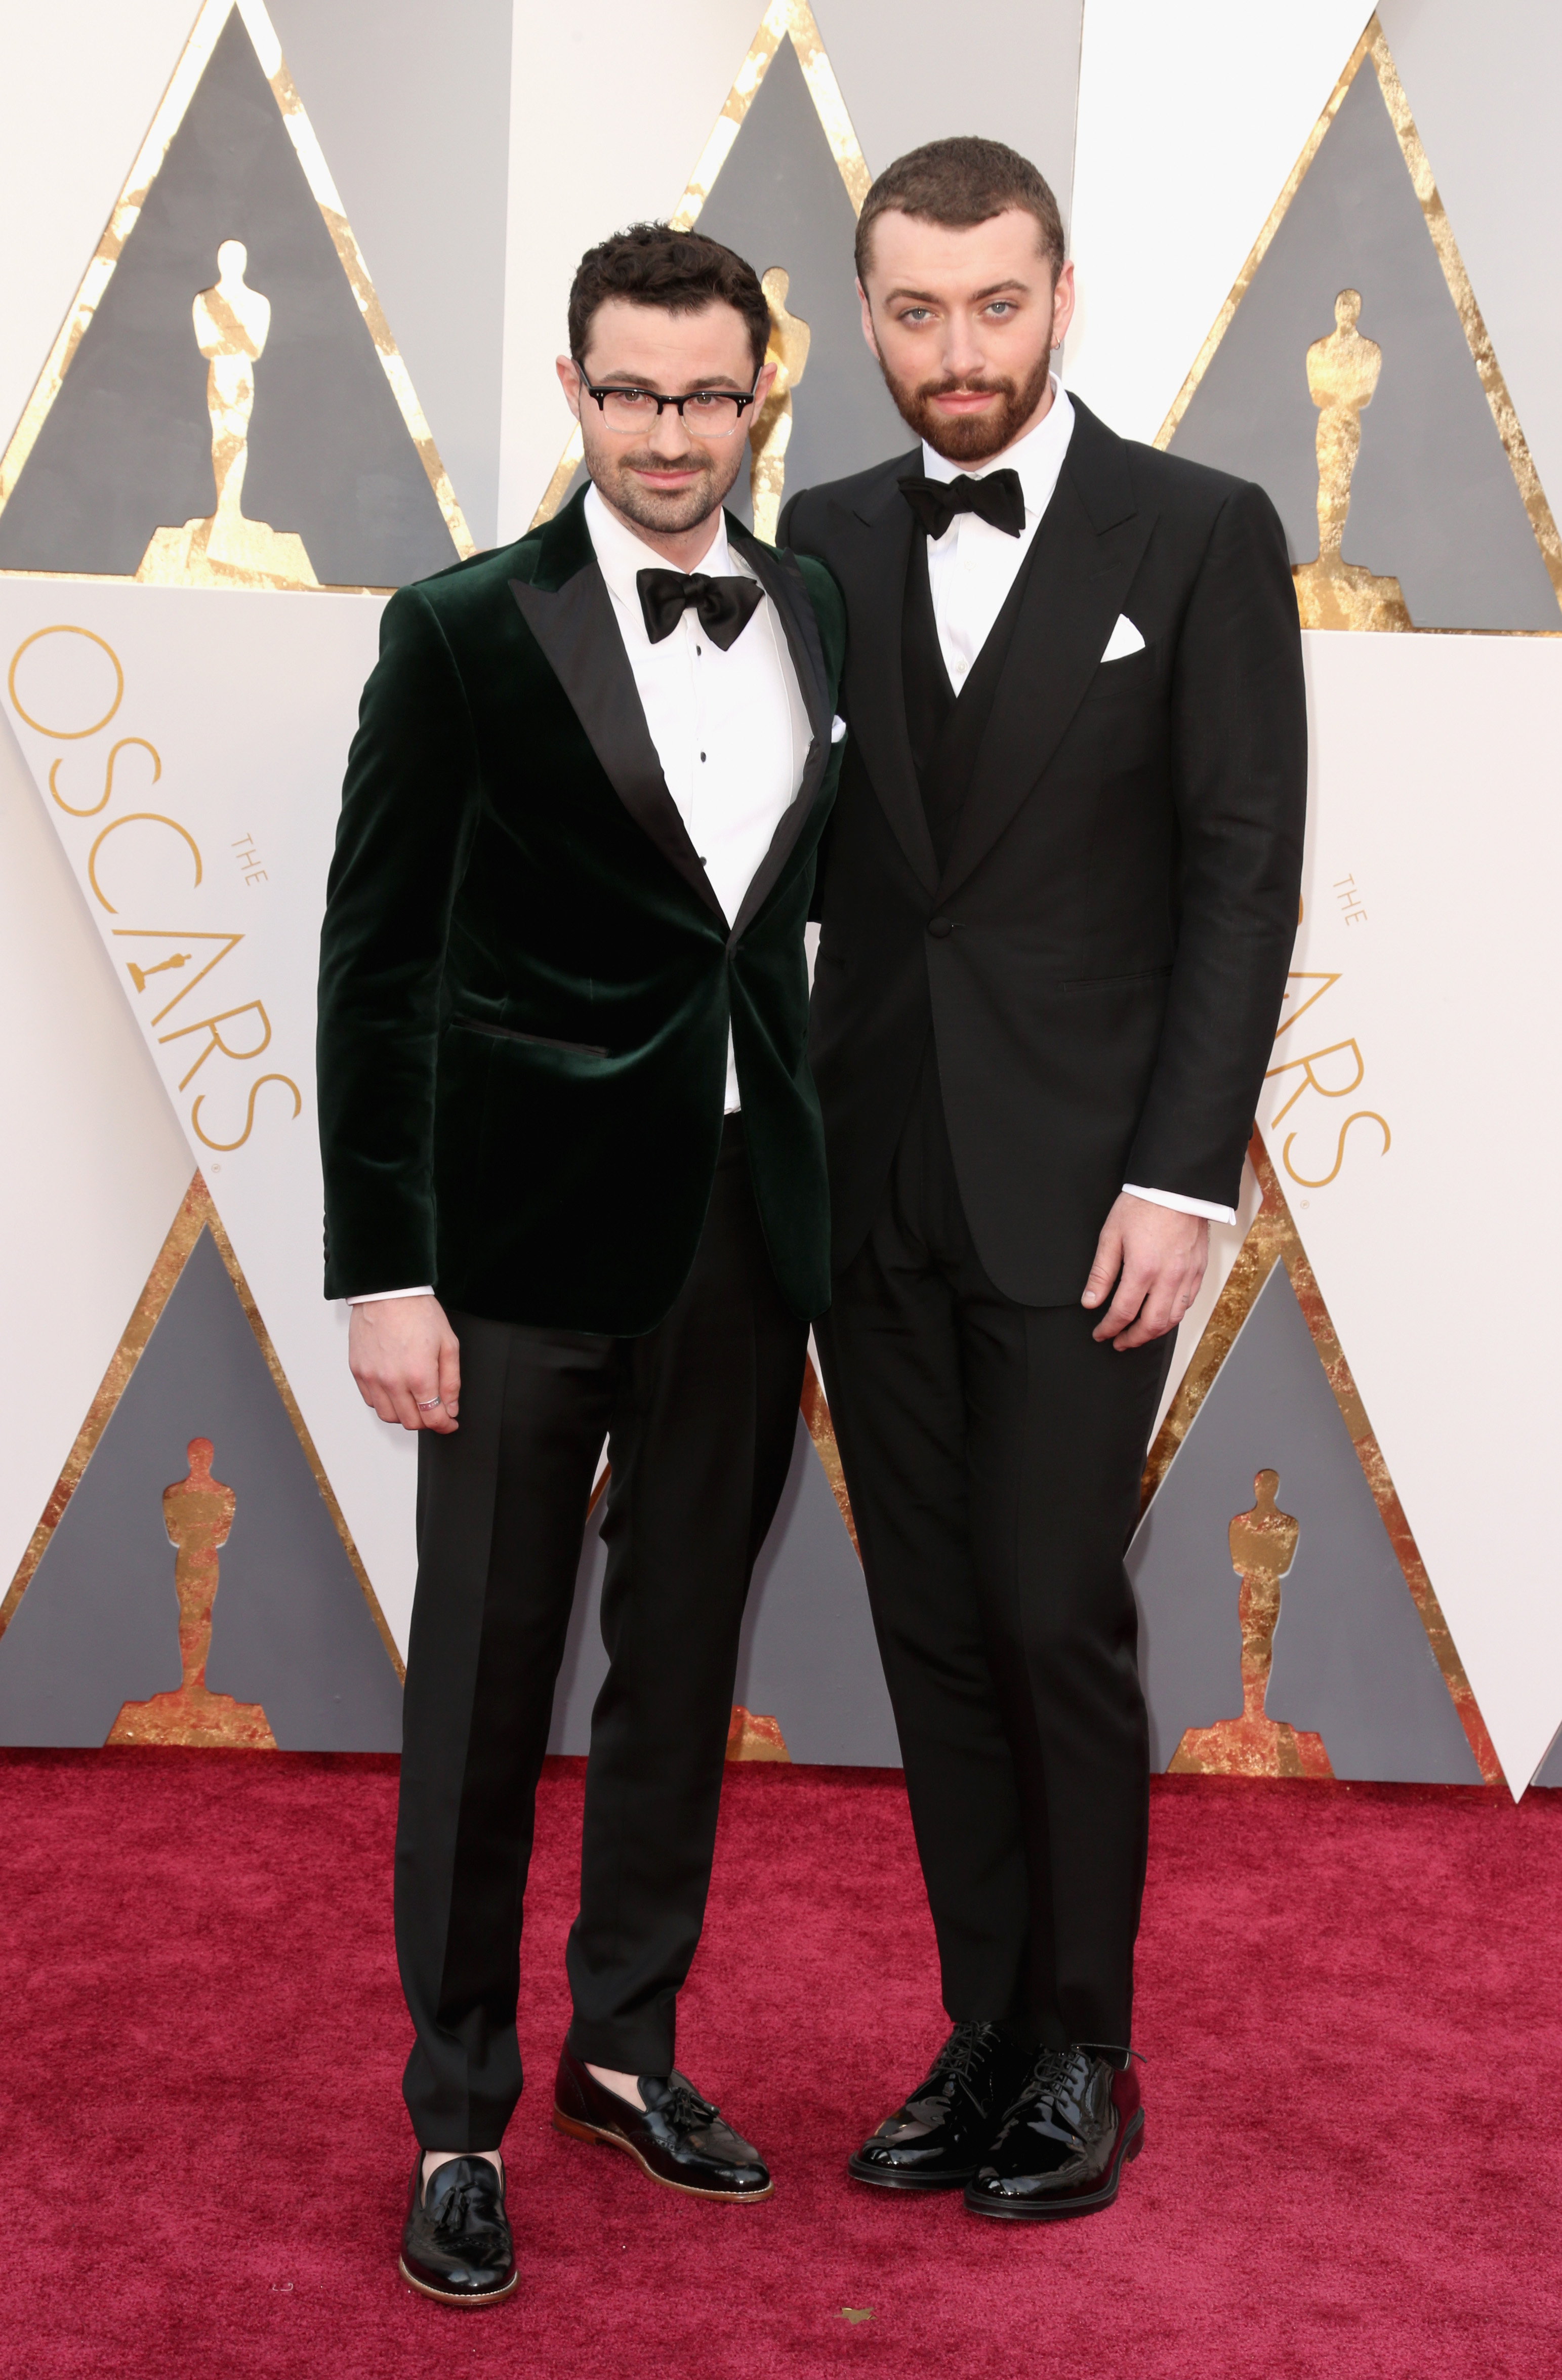 Jimmy Napes and Sam Smith attend the 88th Annual Academy Awards on Feb. 28, 2016 in Hollywood, Calif.